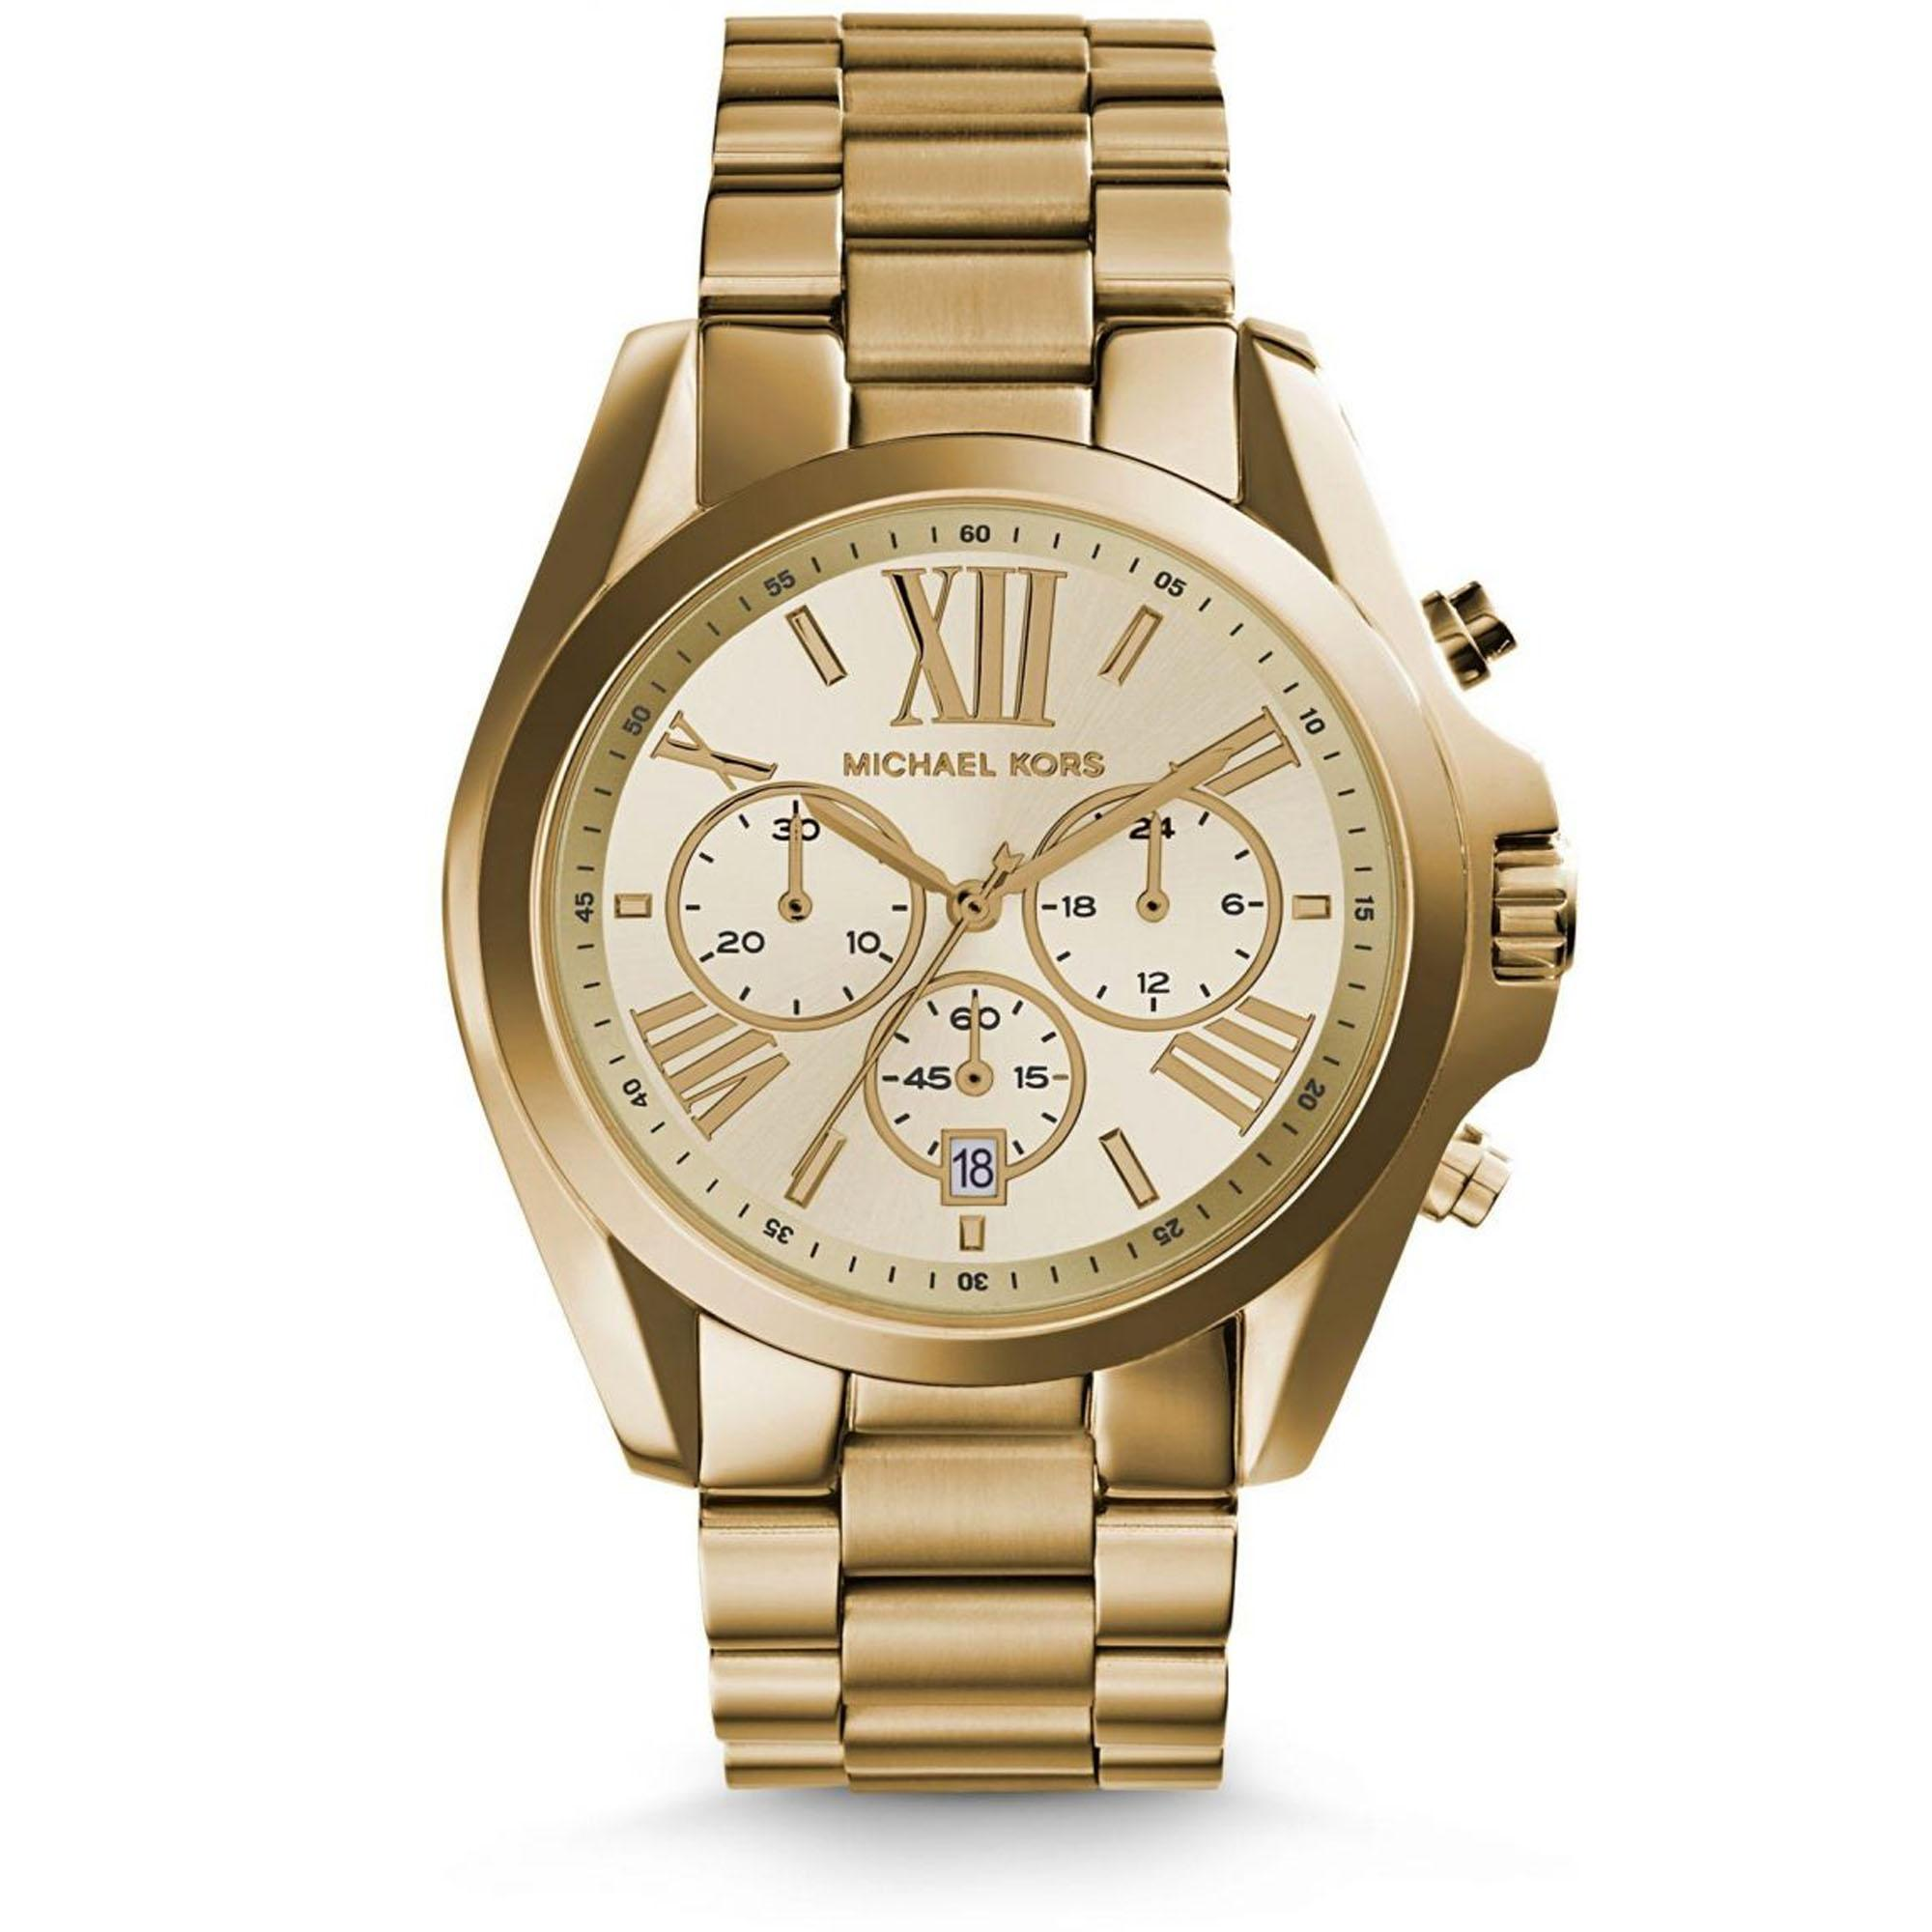 2ad4b69a8080 Michael Kors Philippines -Michael Kors Watches for sale - prices ...